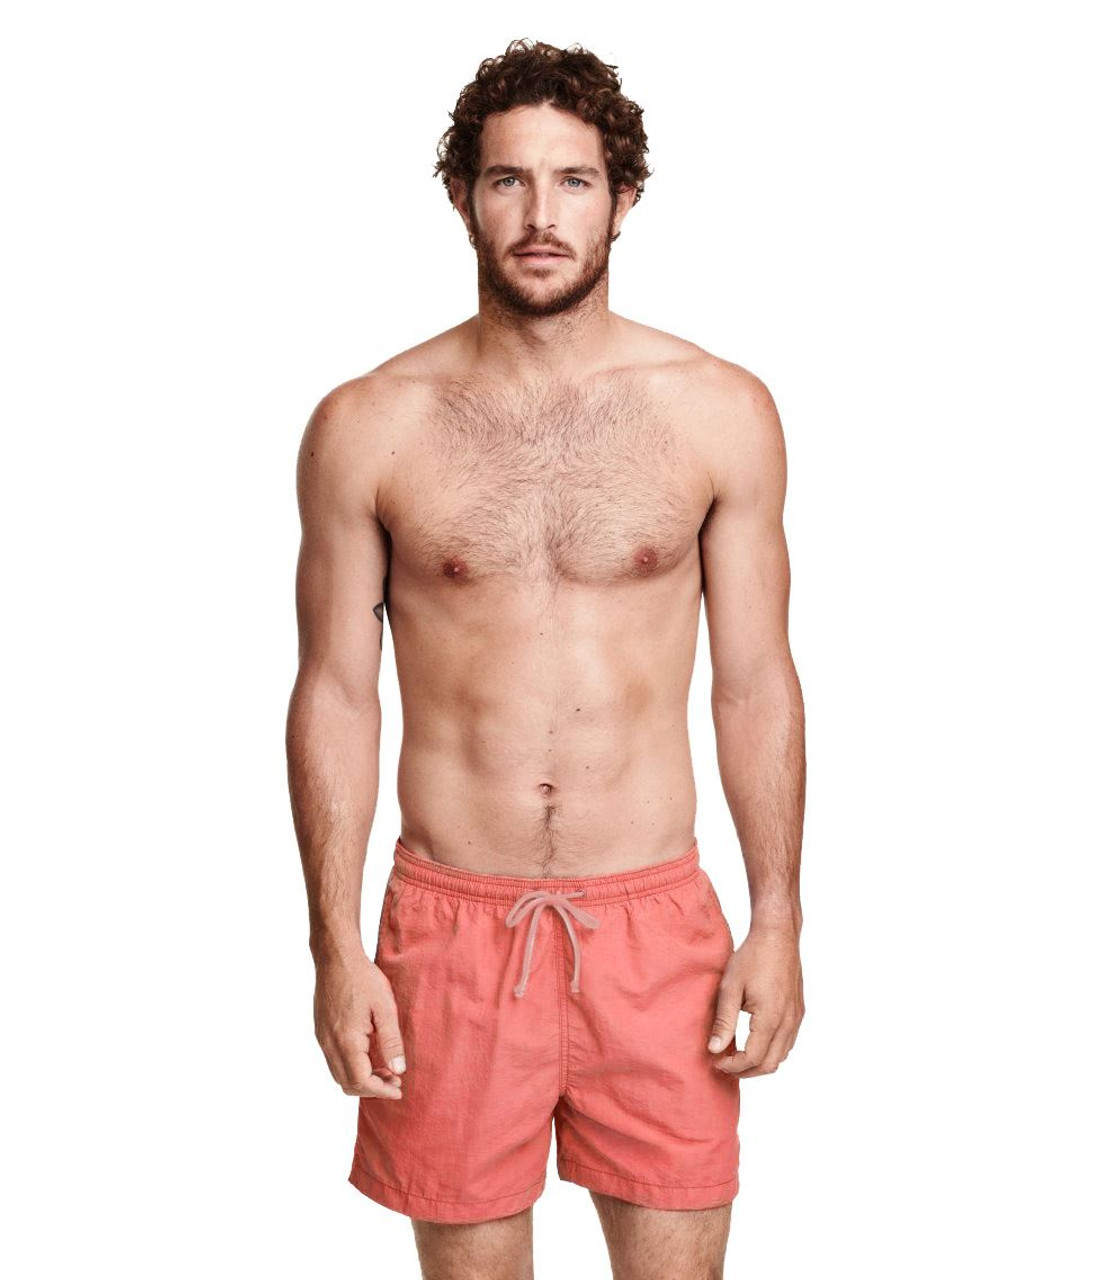 b4343d8424 Mens Swimming Shorts XS-XL Available in Various Colors.